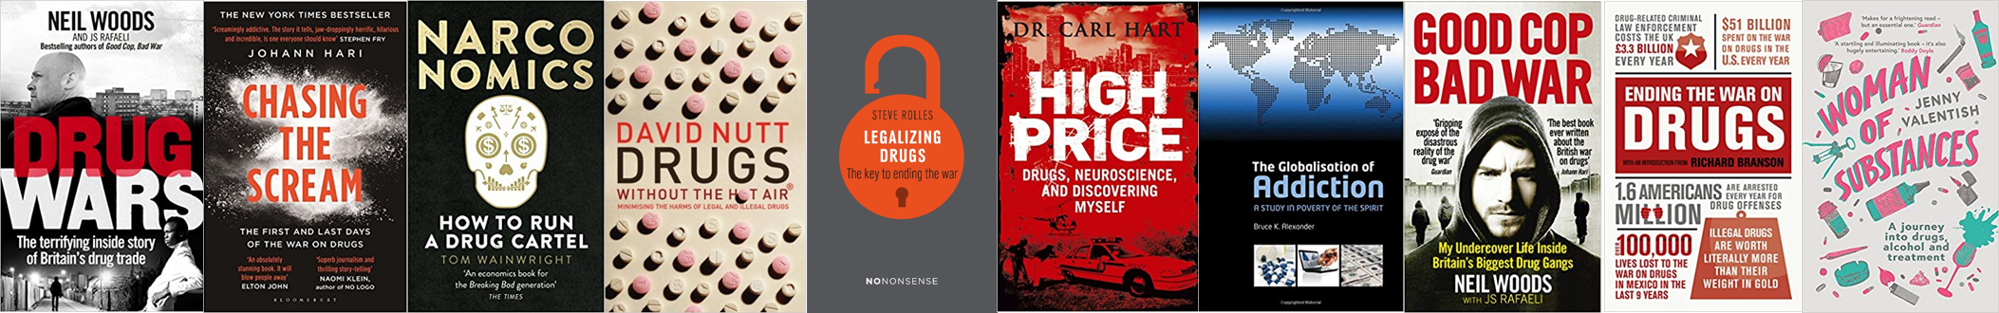 Recommended Reading: Top 10 Drug Policy Reform Books